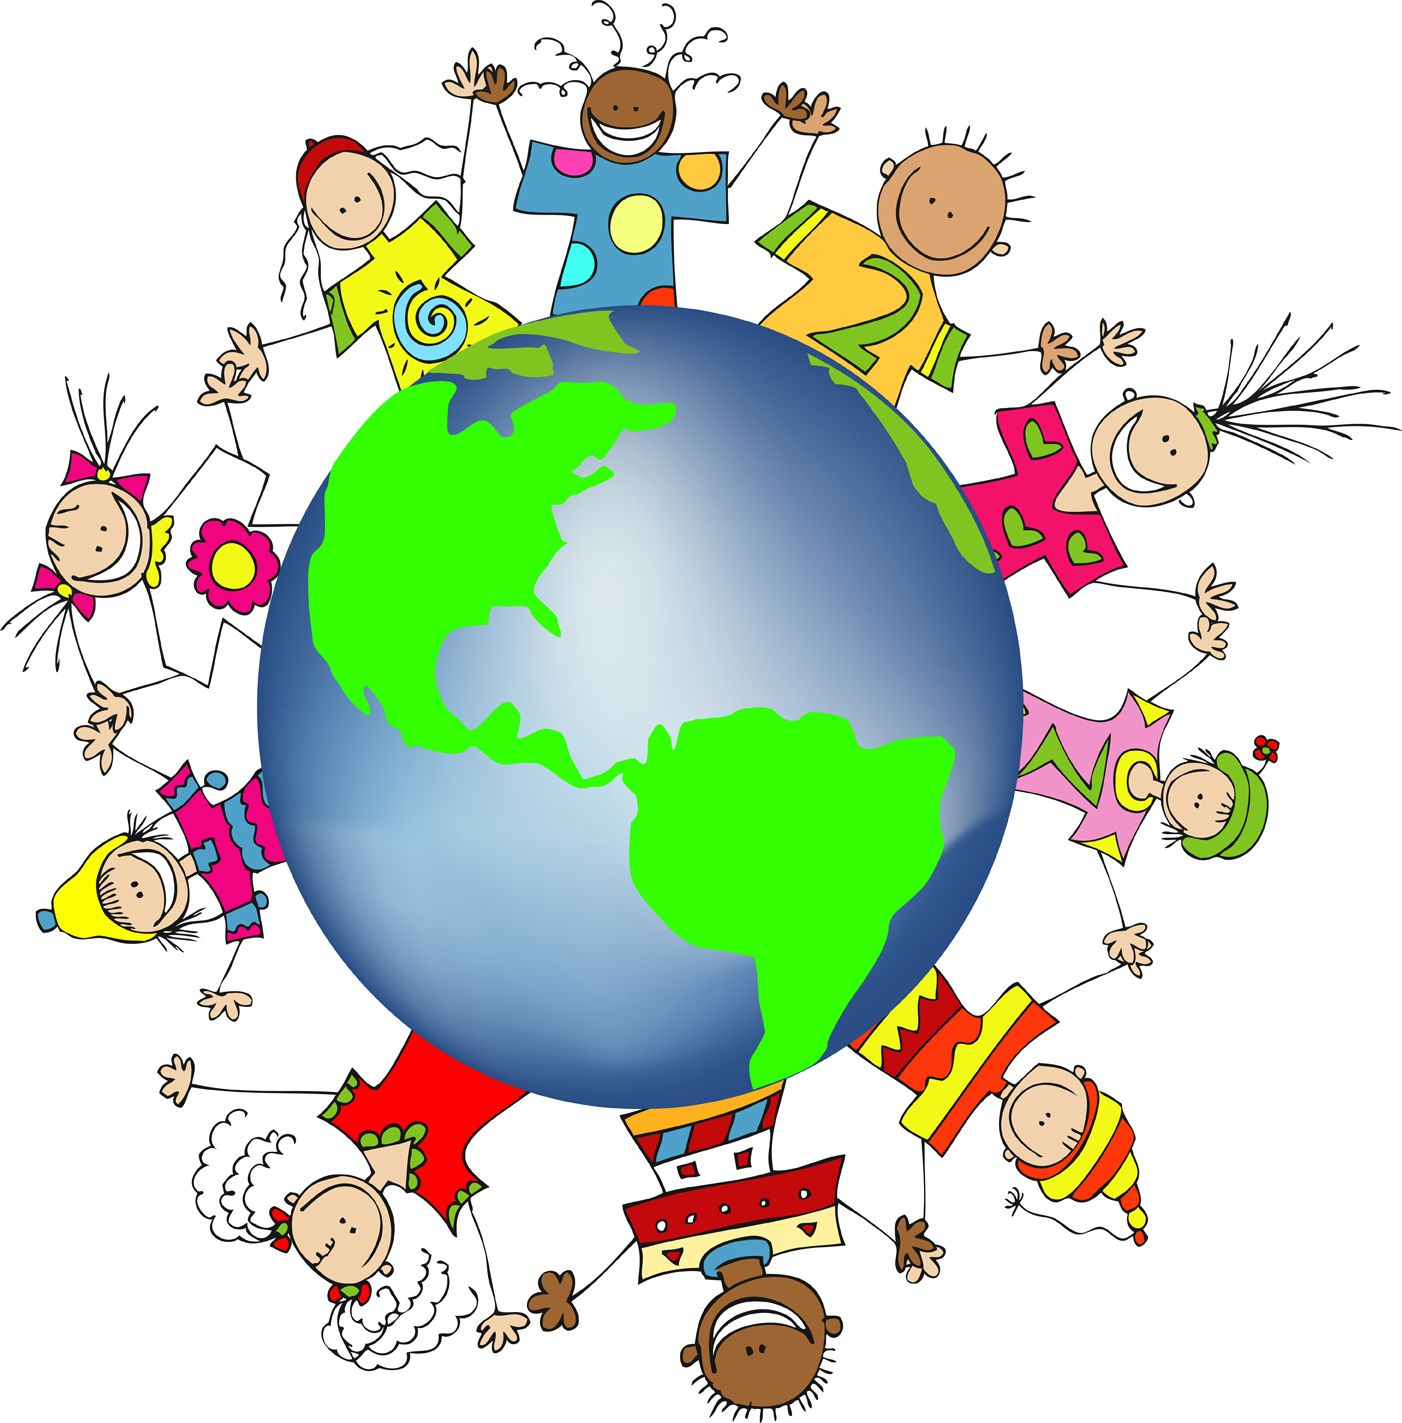 Clipart world. Kids hands friends networks